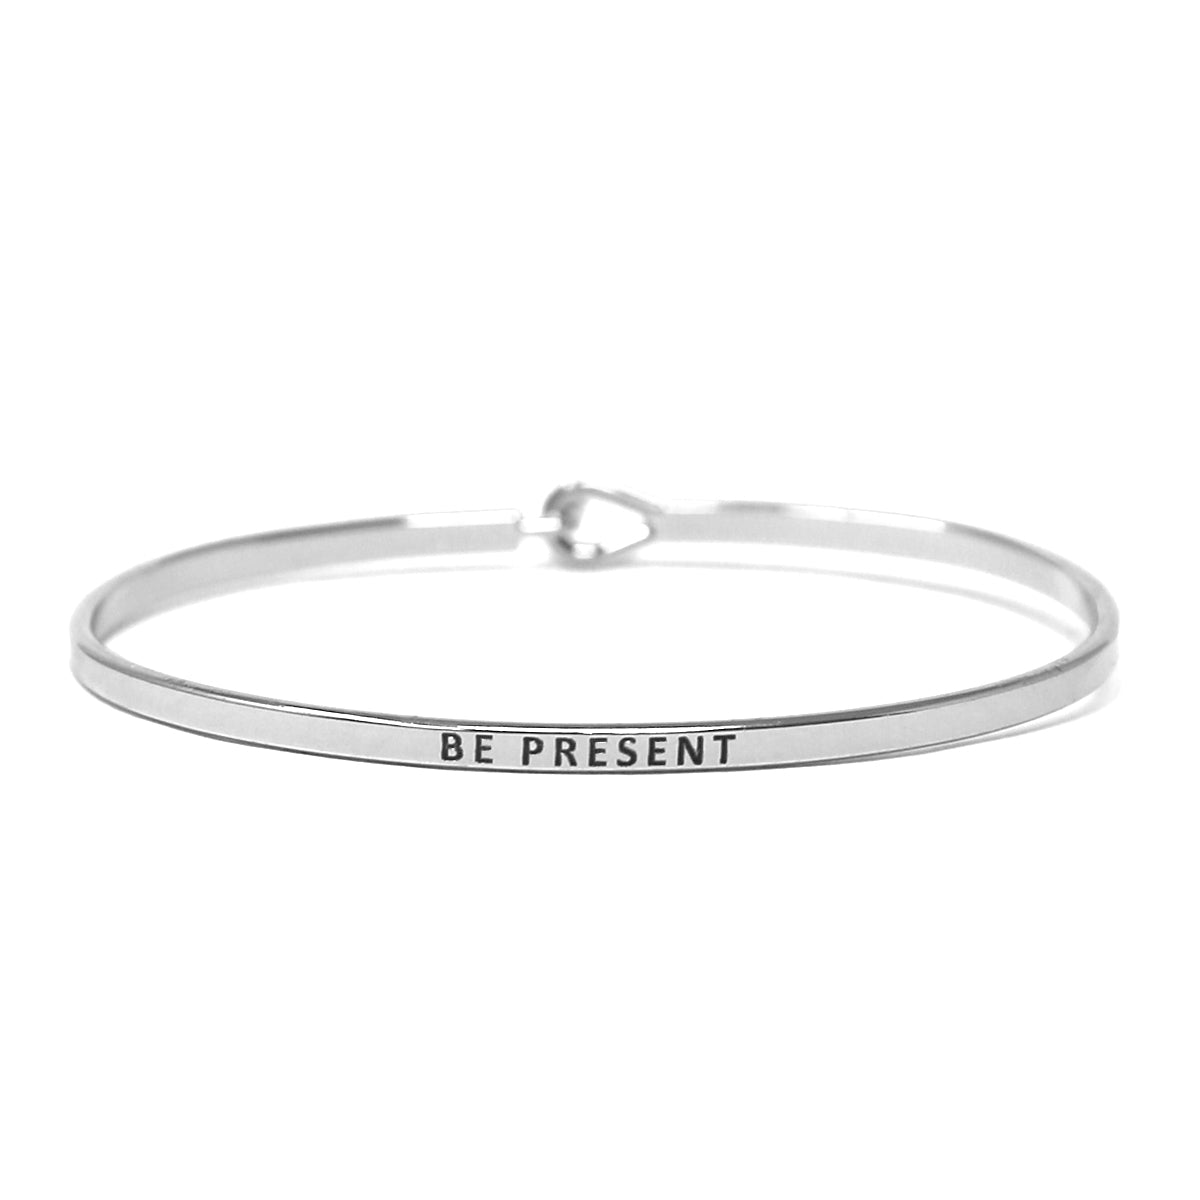 BE PRESENT Inspirational Message Bracelet